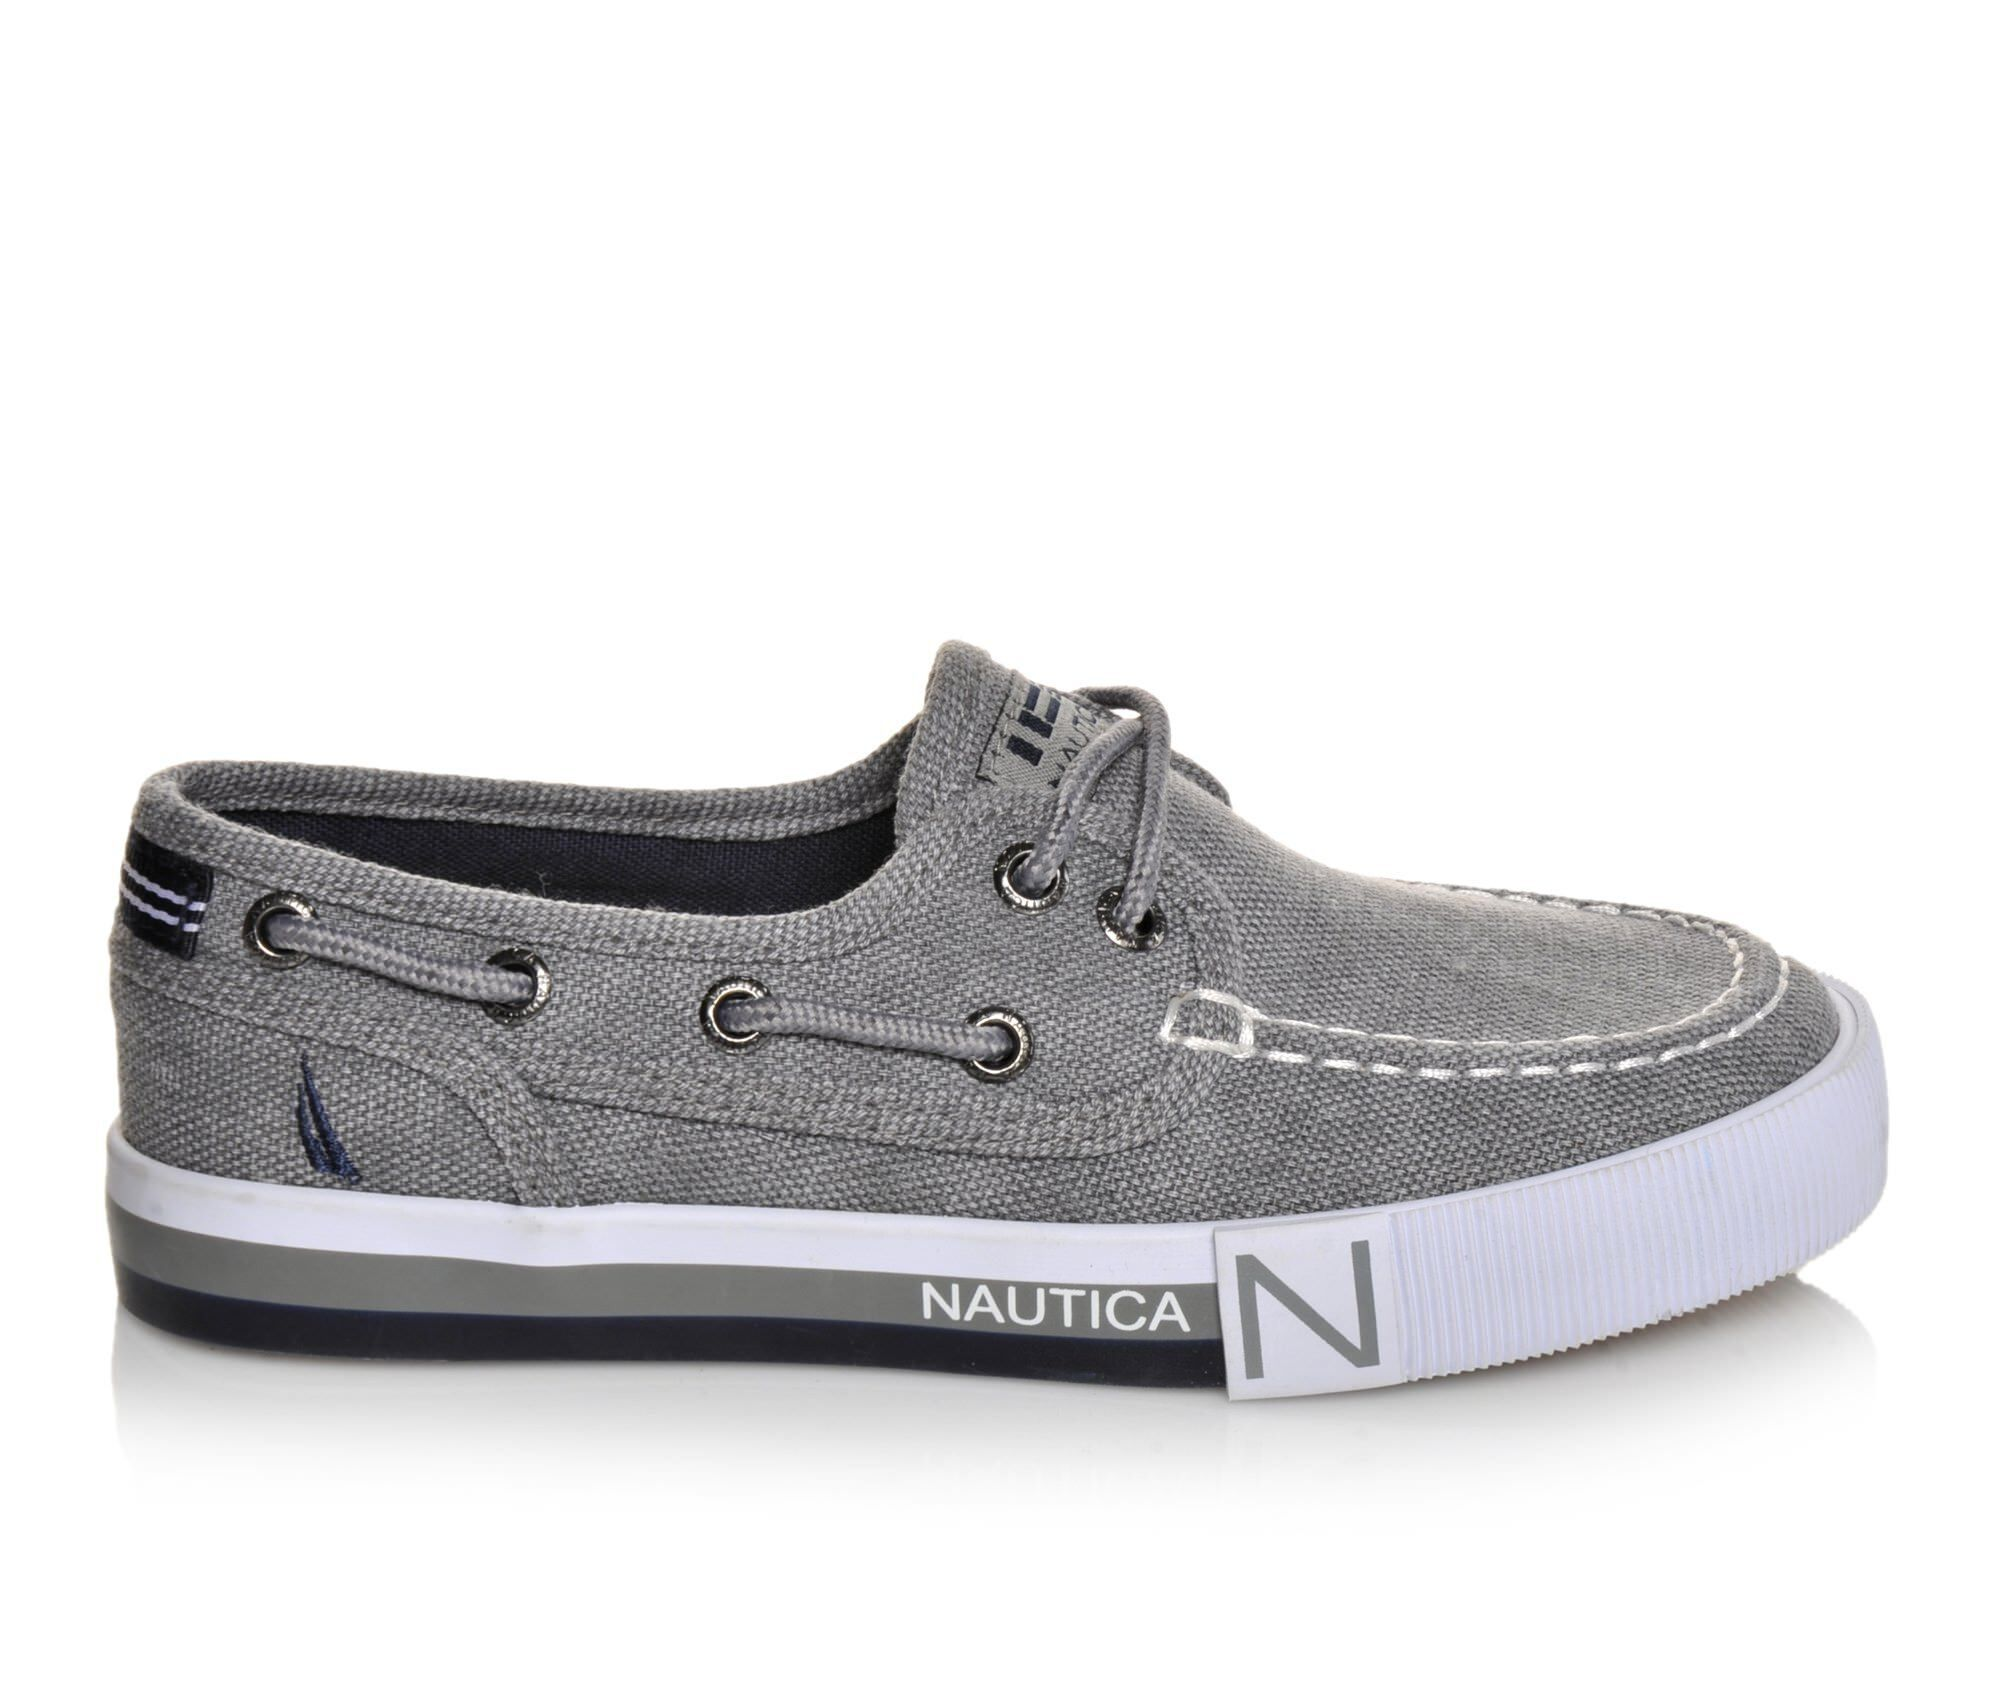 kenneth cole reaction shoes great galley ship